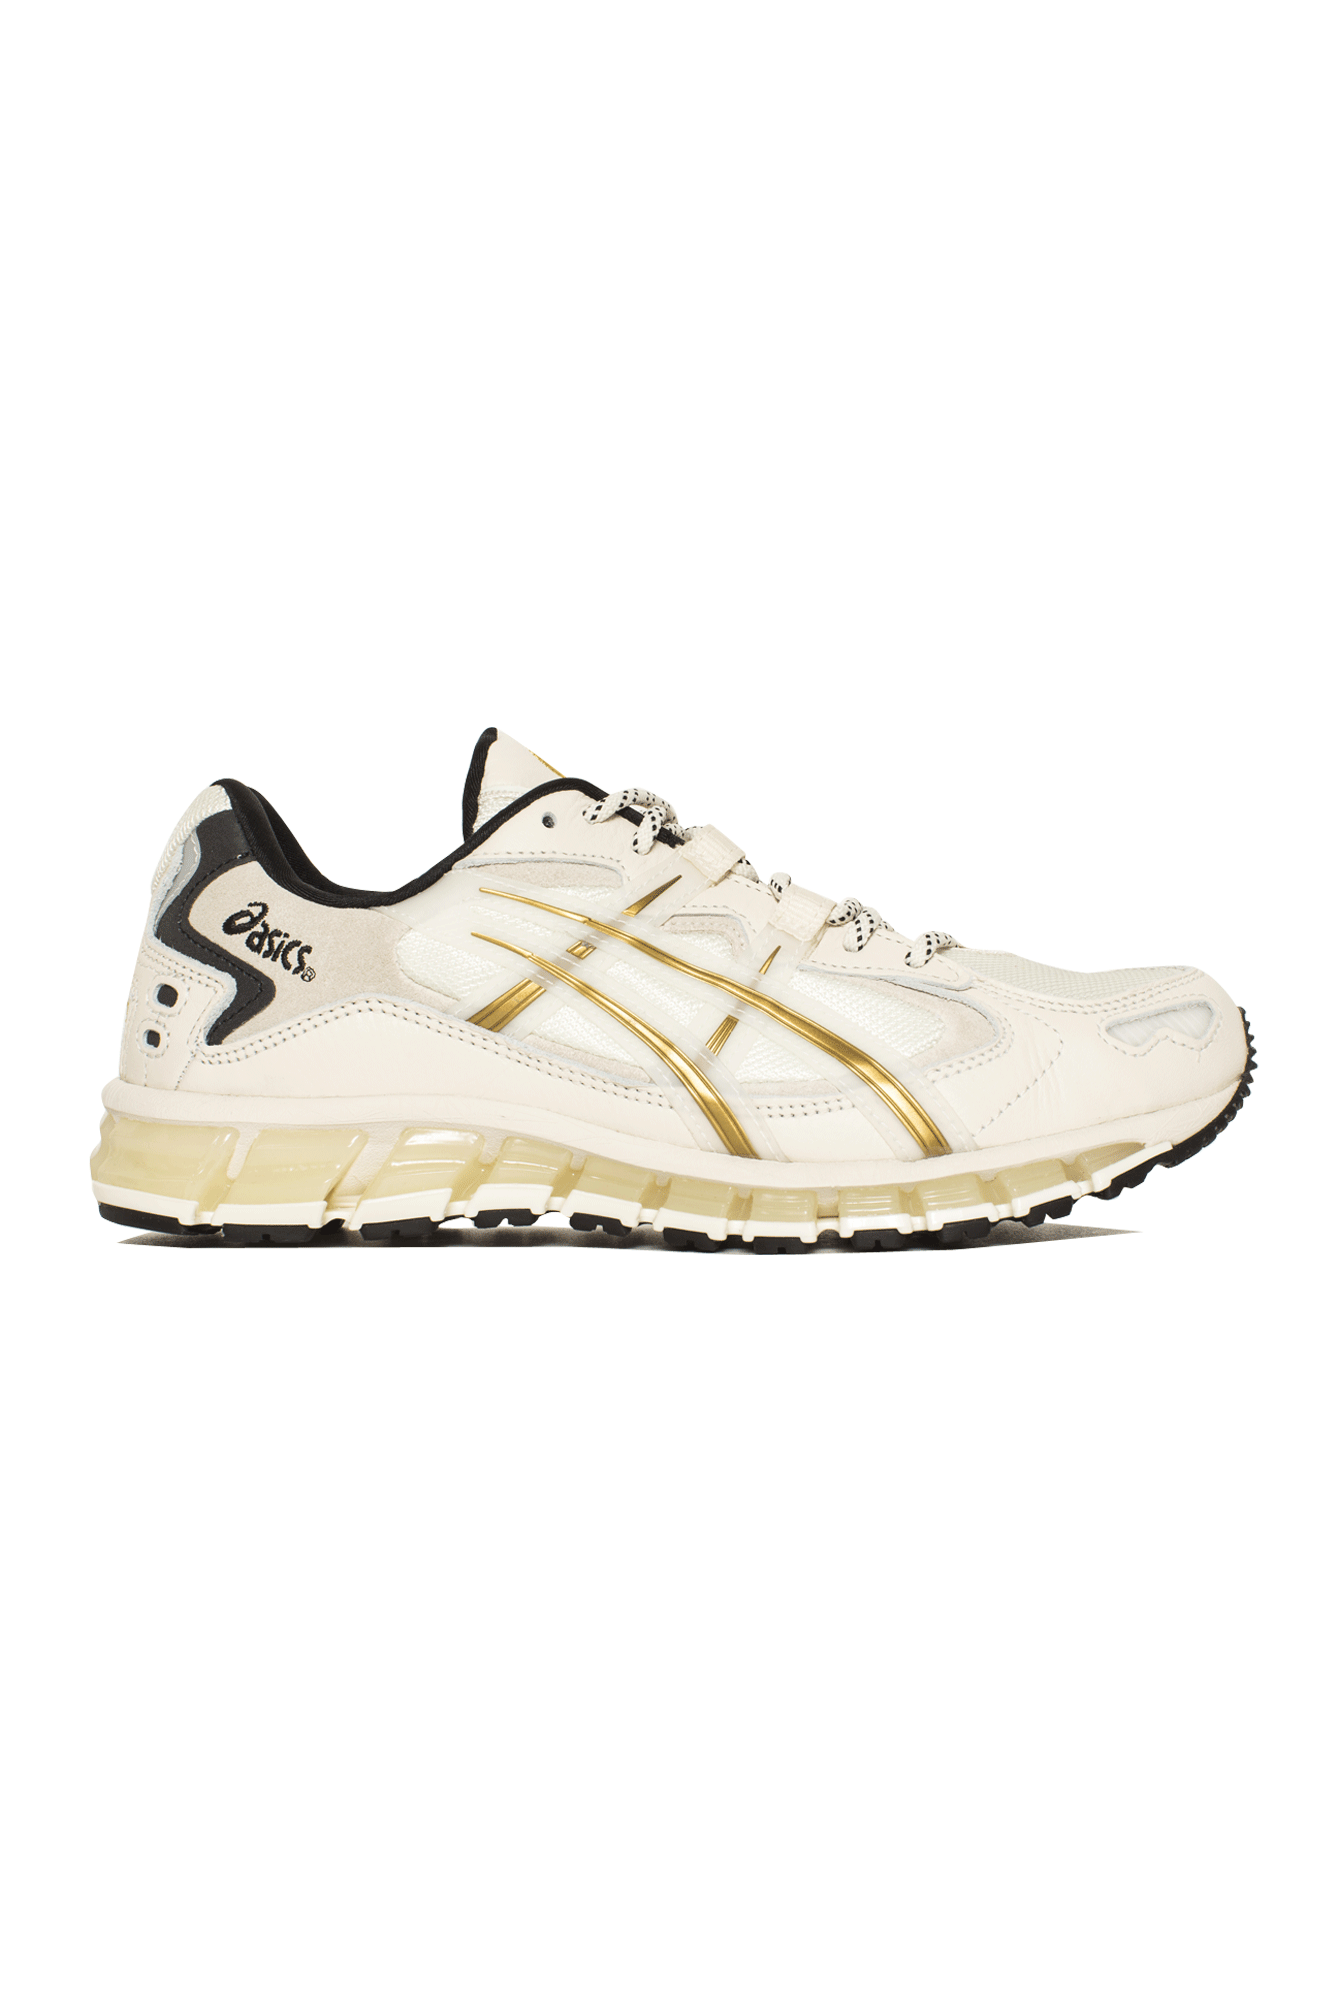 Gel-Kayano5 360 Gold